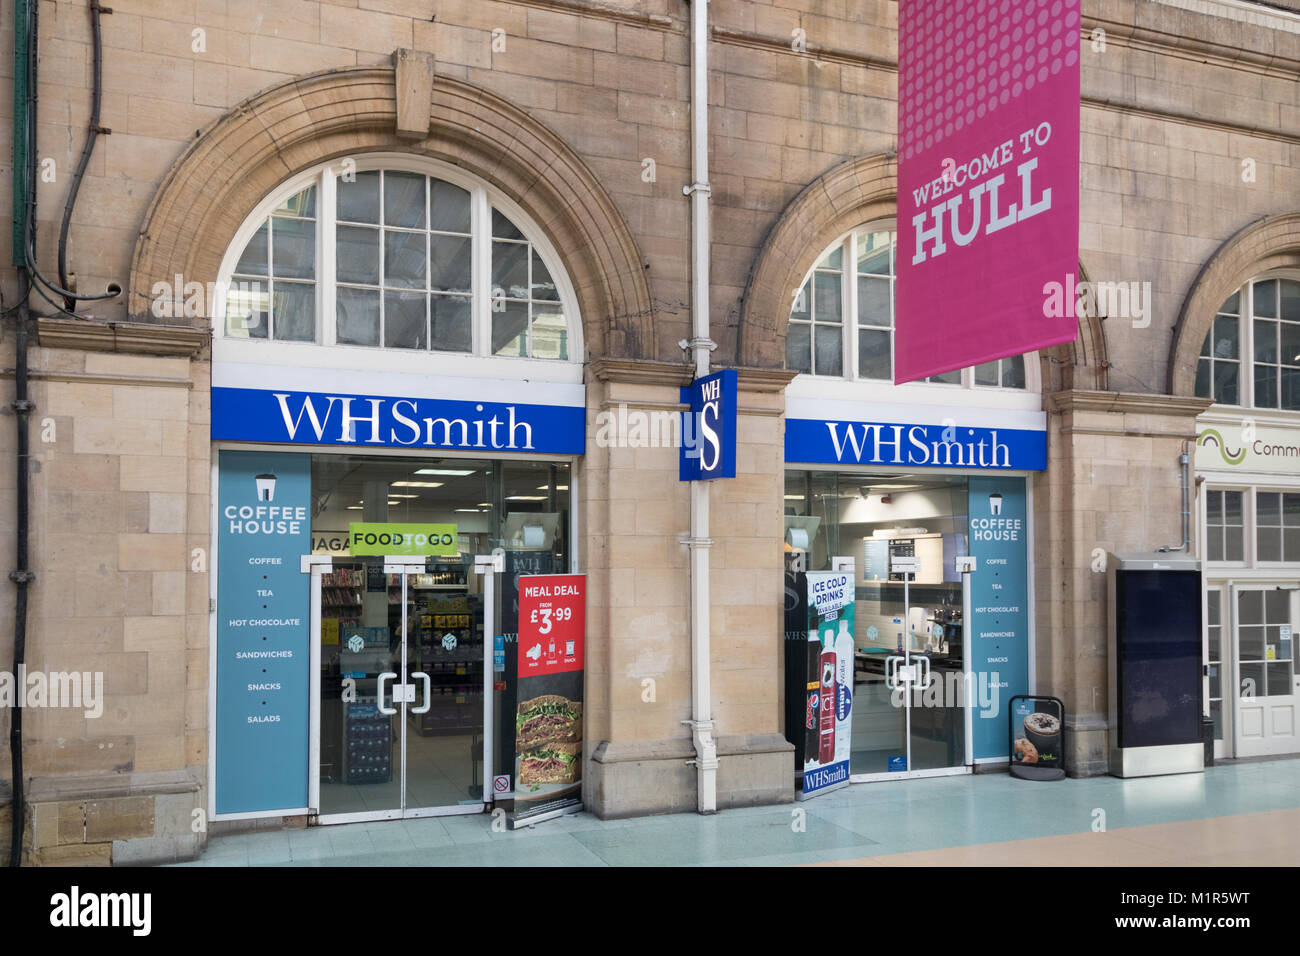 The WH Smith shop in Hull Paragon Interchange - Stock Image